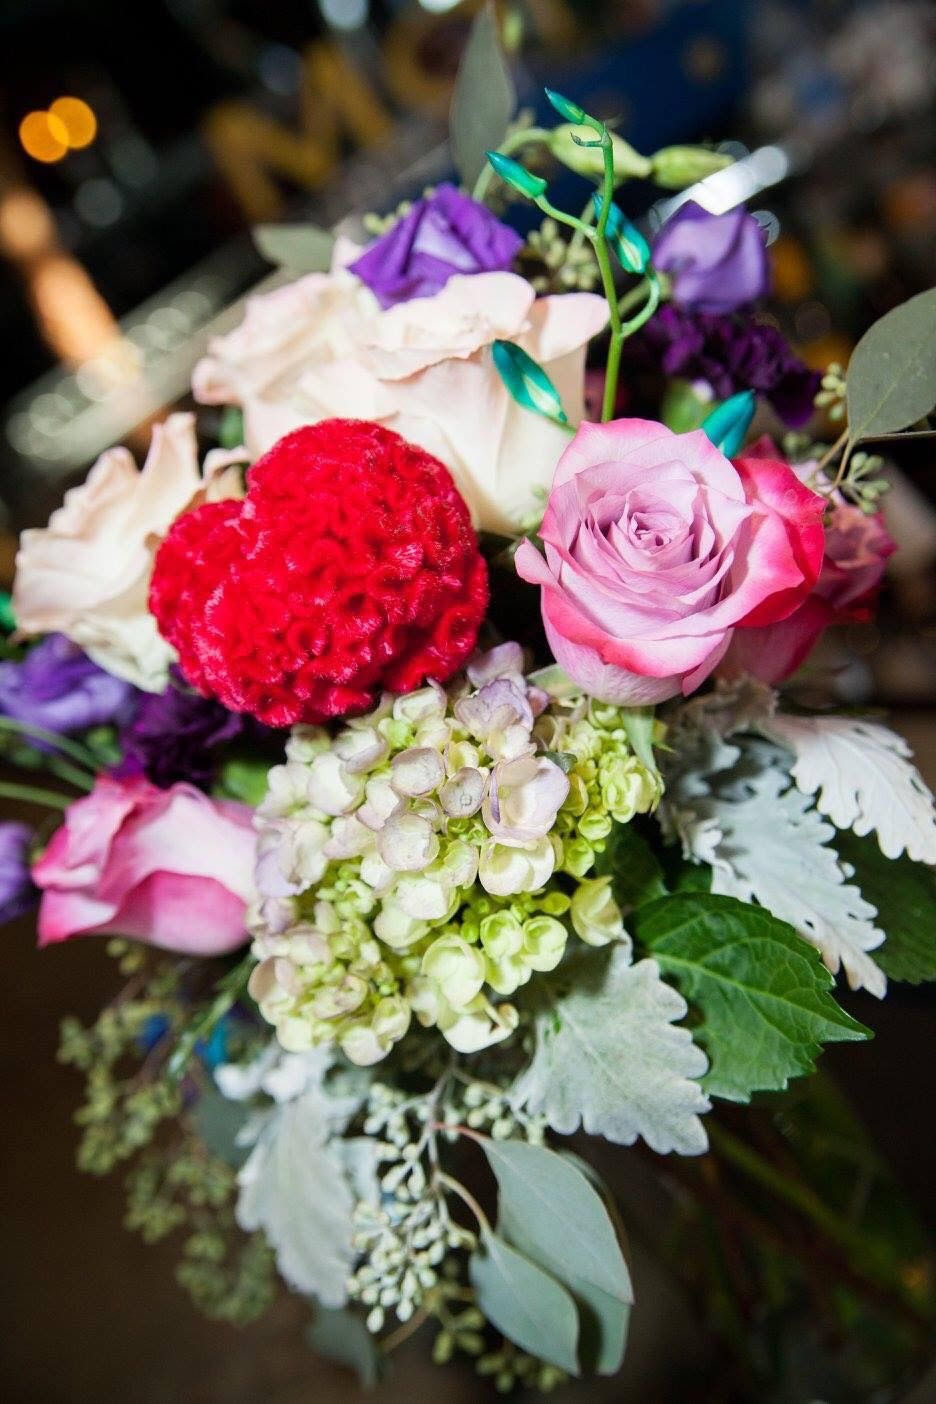 A Vibrant Wedding Bouquet Send Flowers Online Flower Delivery Same Day Flower Delivery